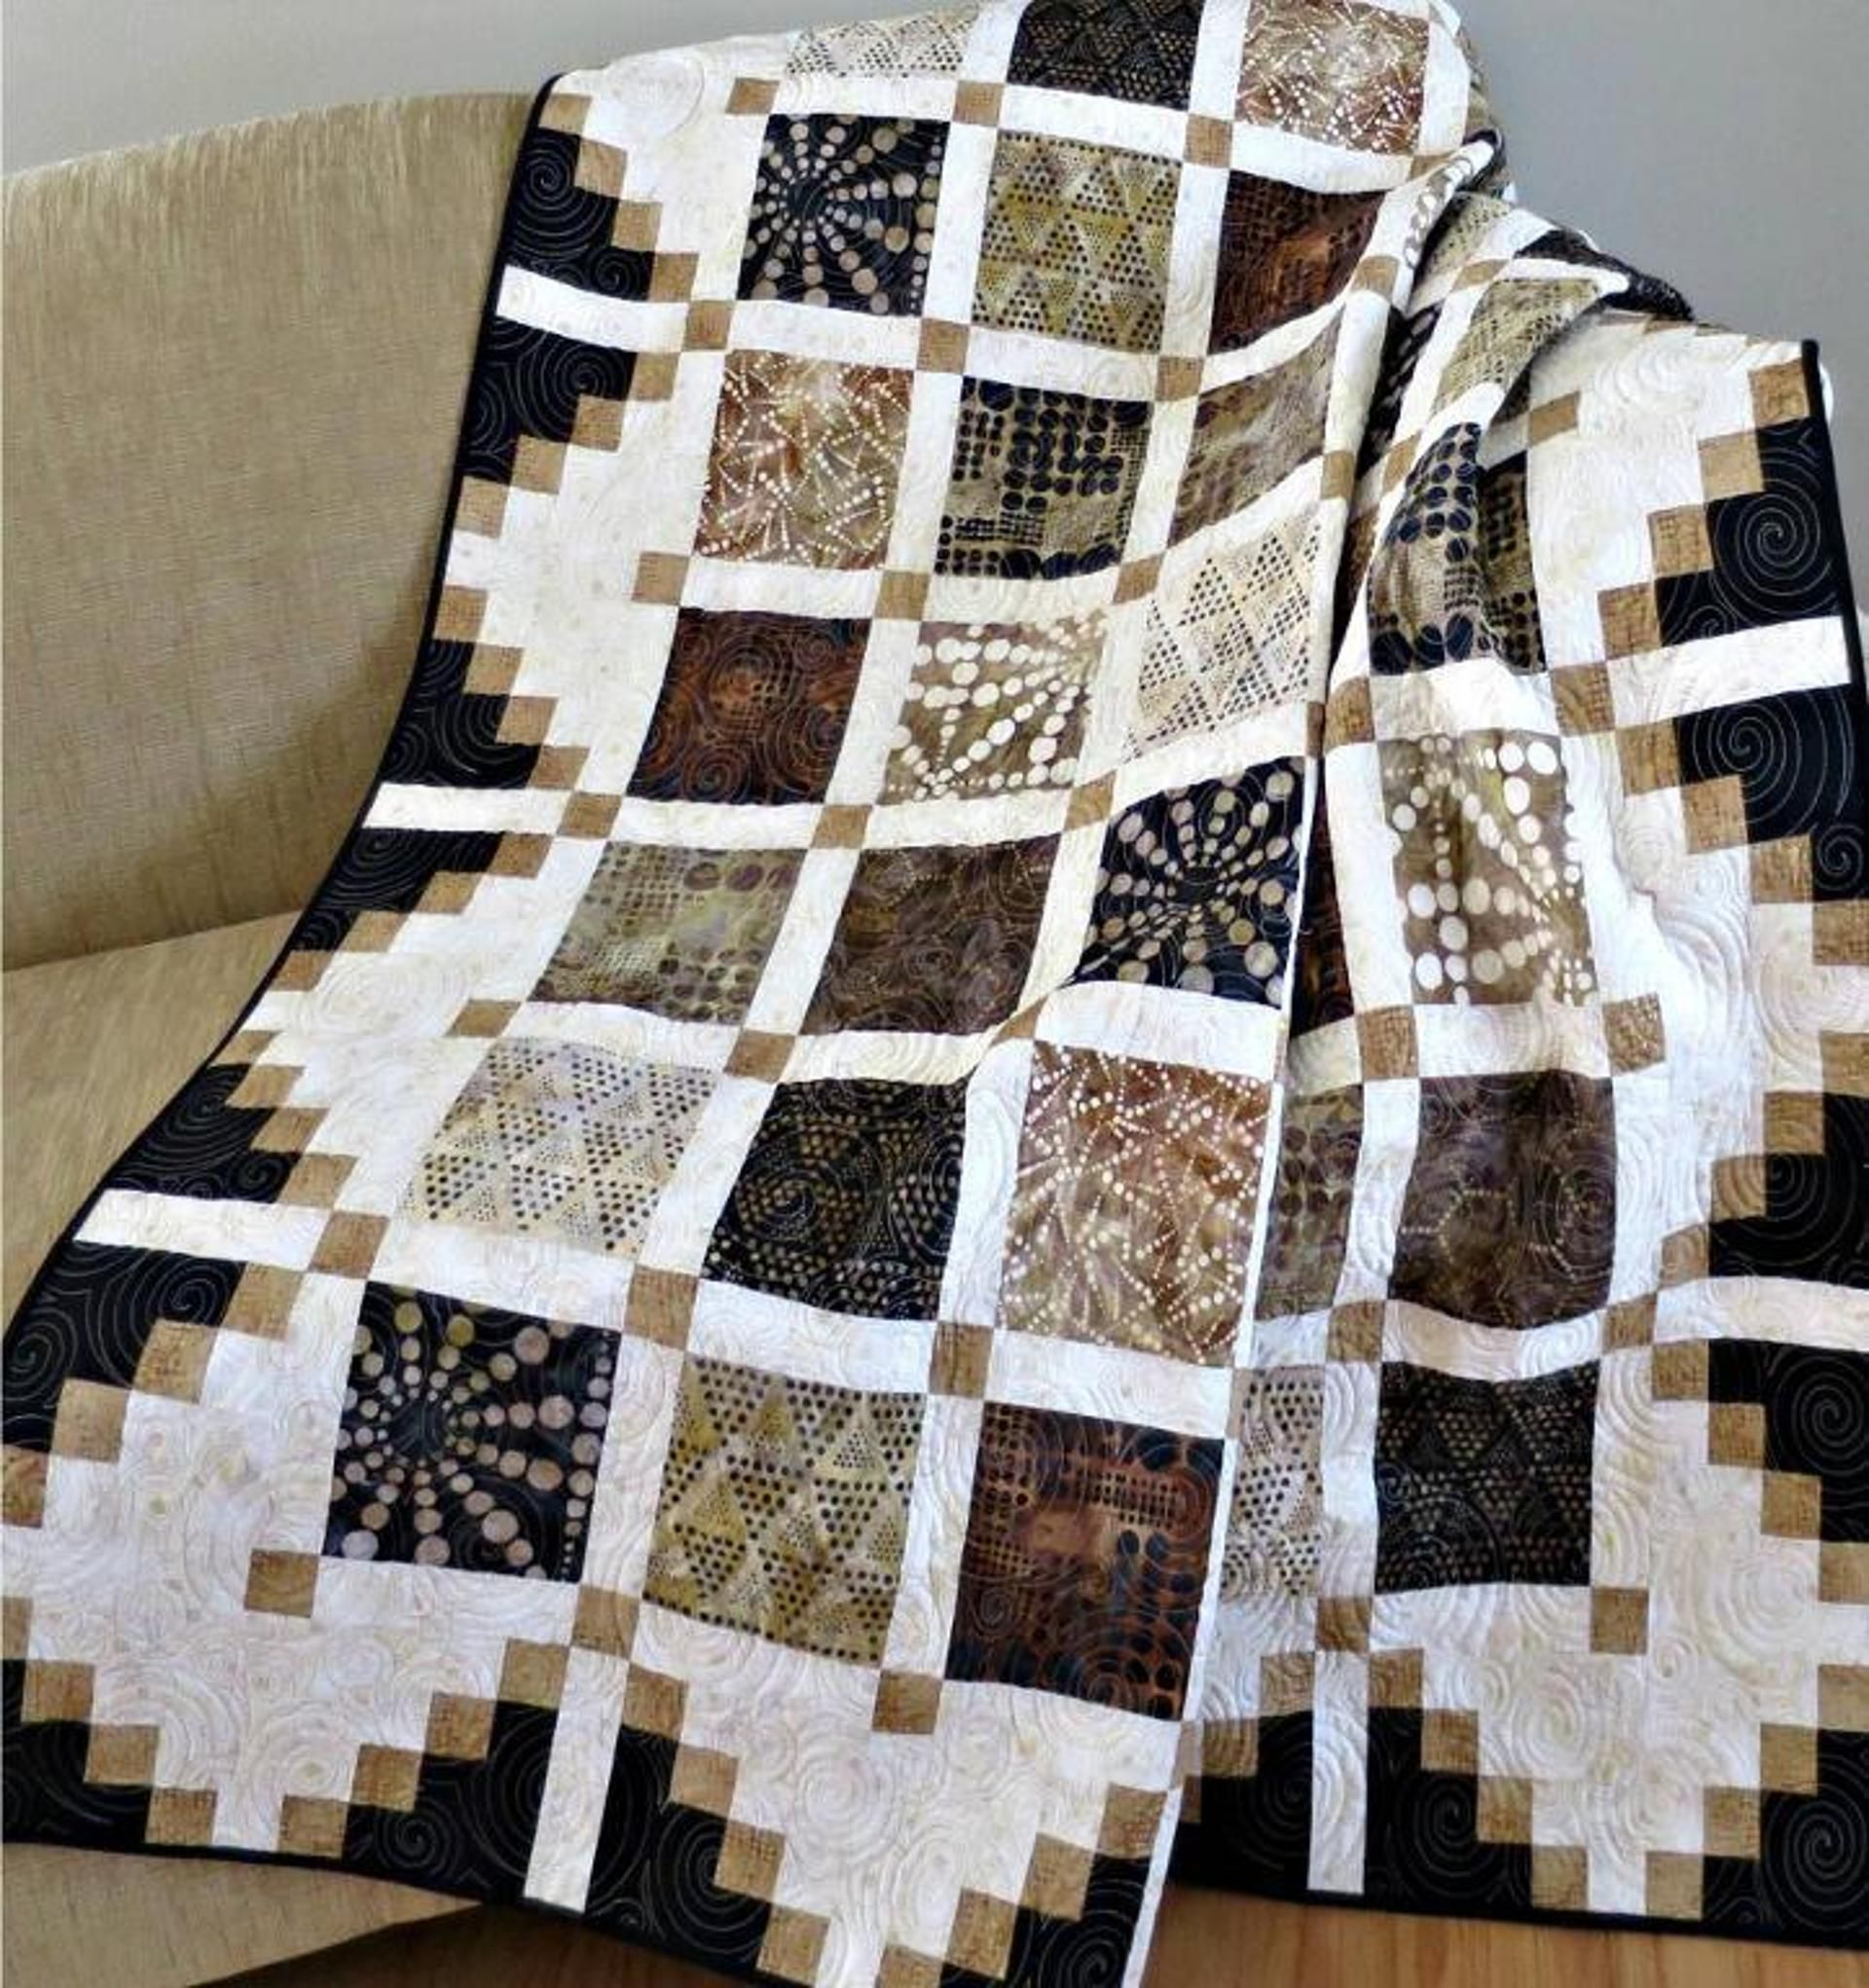 444 Simply Cool Quilt Pattern PDF | Pdf, Patterns and Free motion ...